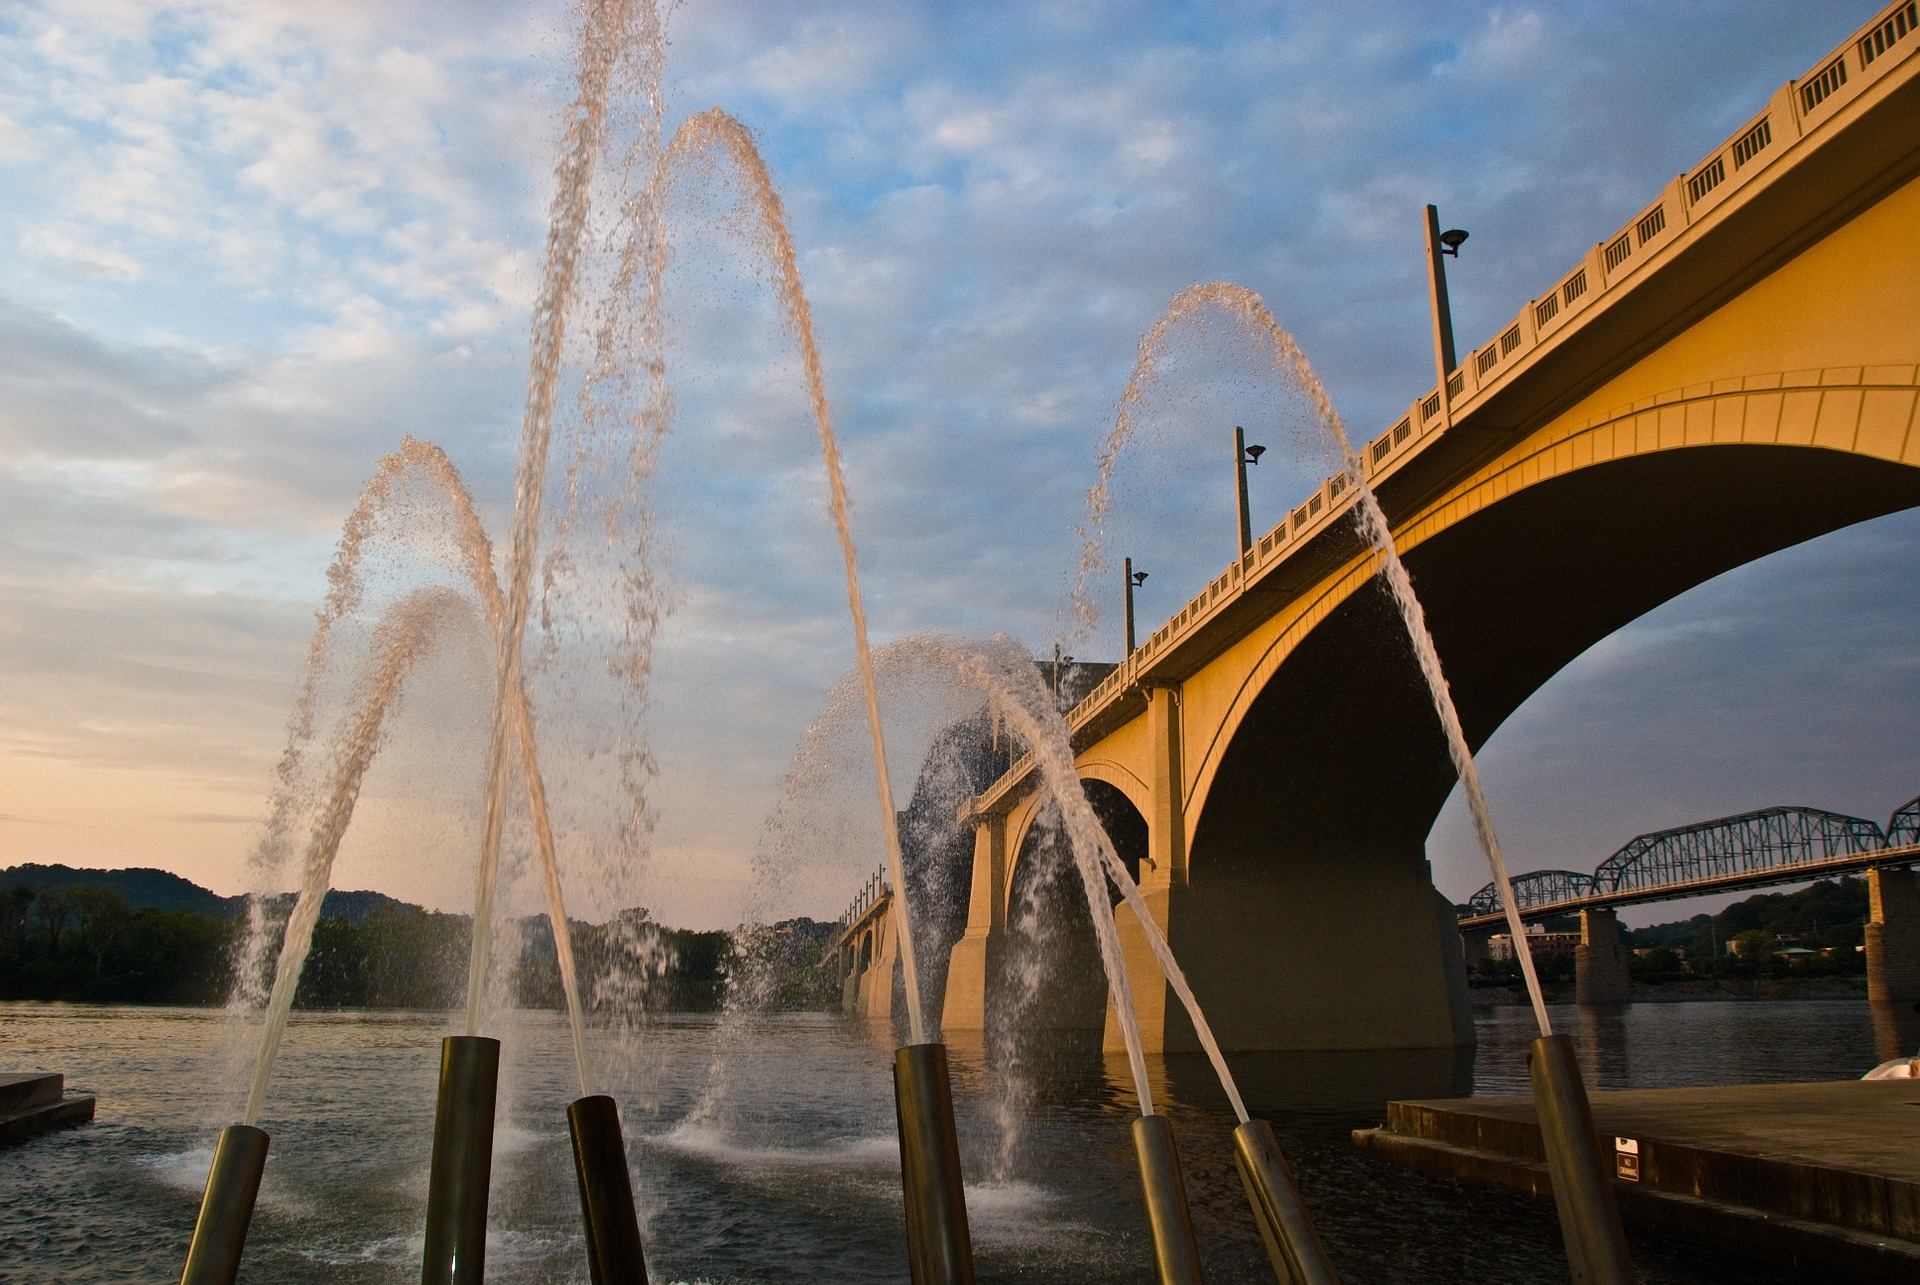 State of the City - Chattanooga, TN